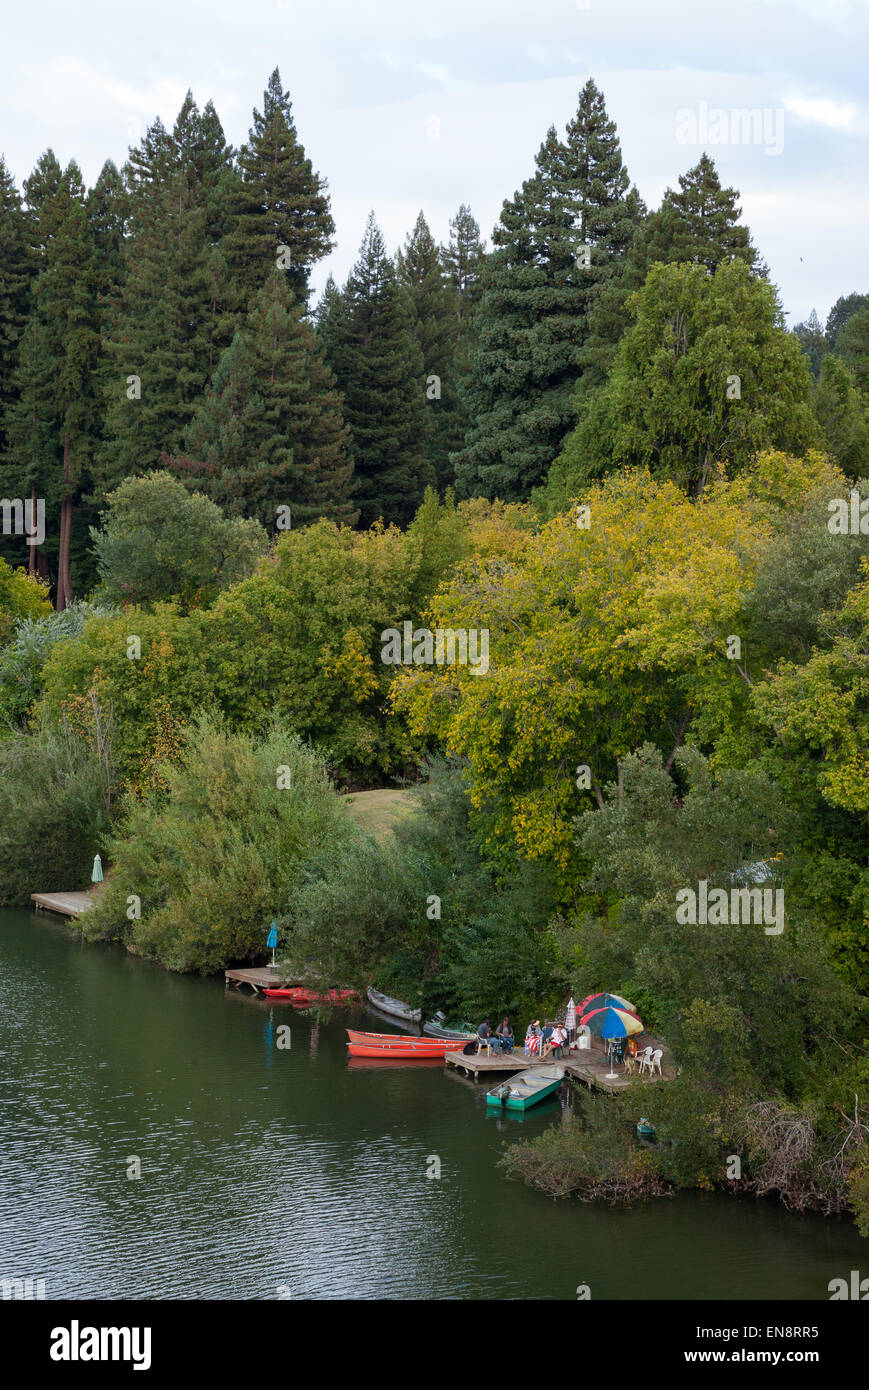 A private dock on the Russian River near Guernville in Northern California. - Stock Image